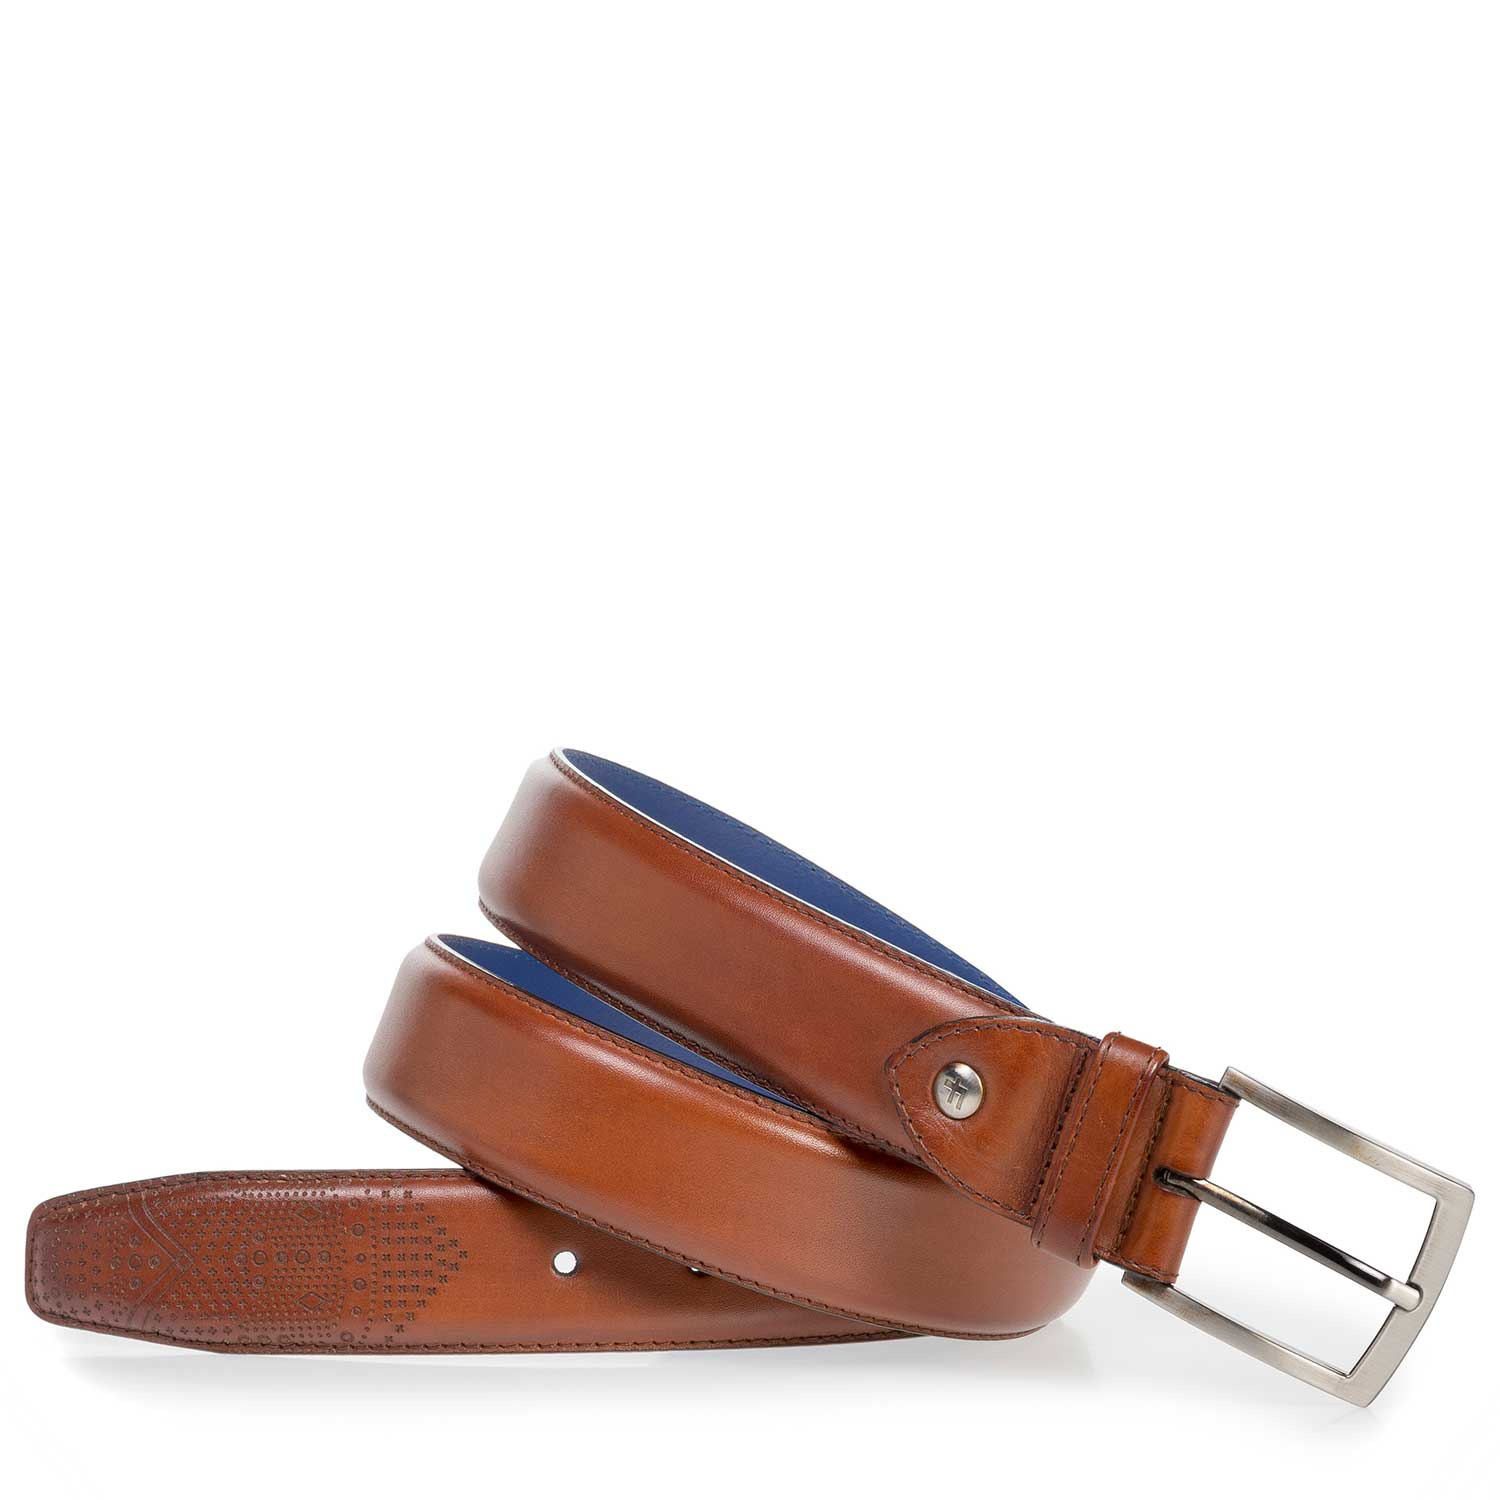 75210/00 - Dark cognac-coloured calf leather belt